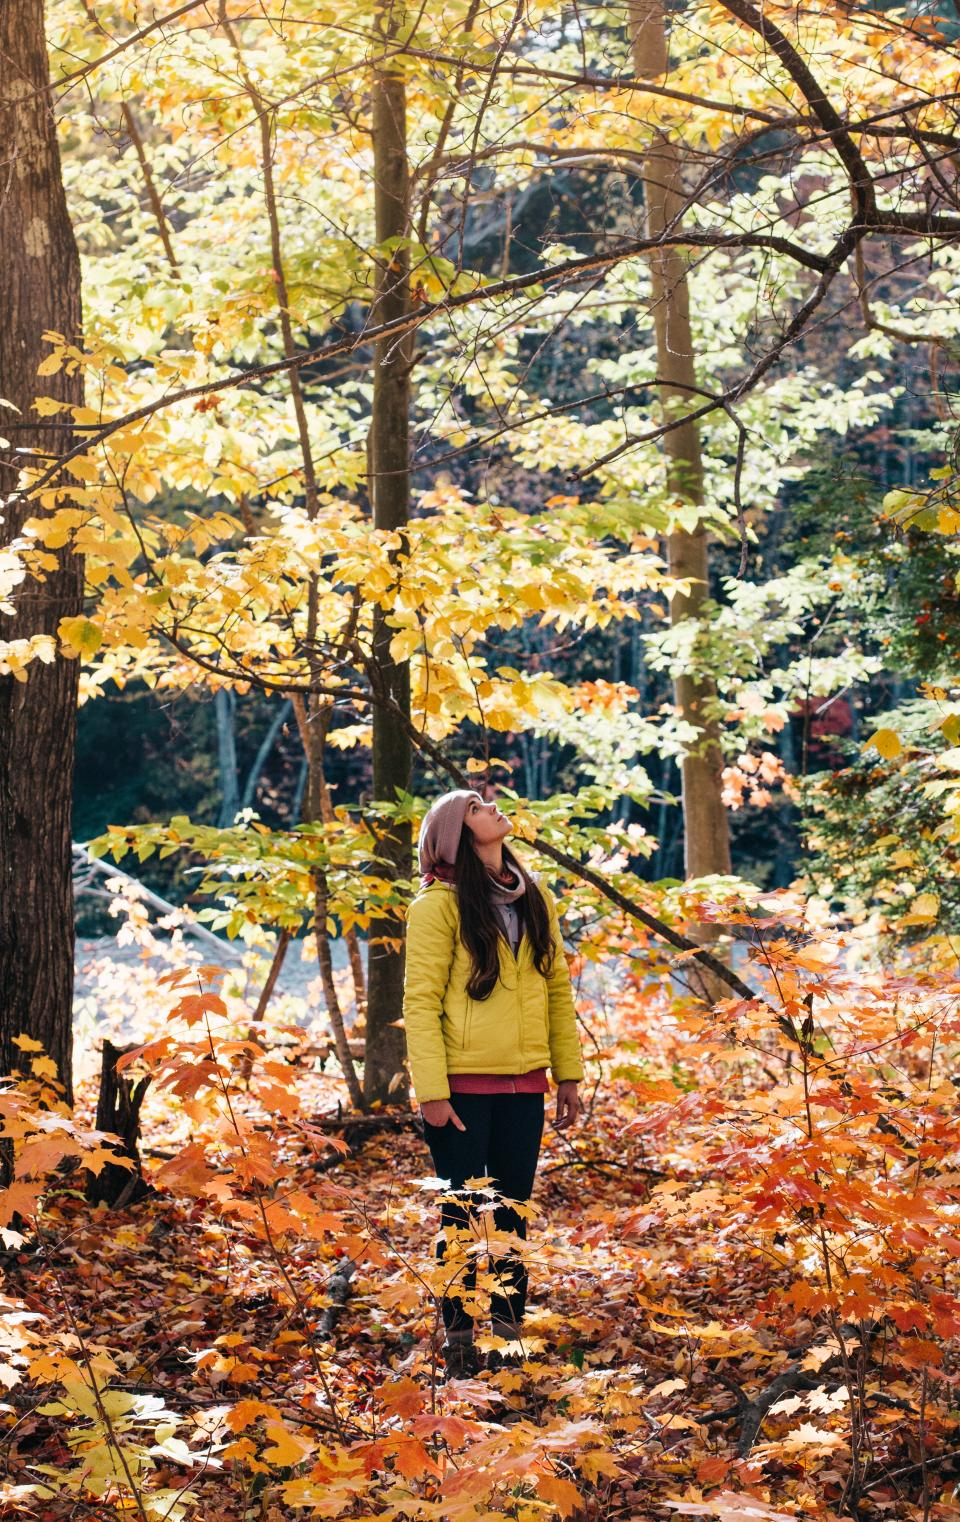 trees plant forest sunrise sunlight nature autumn fall people alone woman adventure outdoor